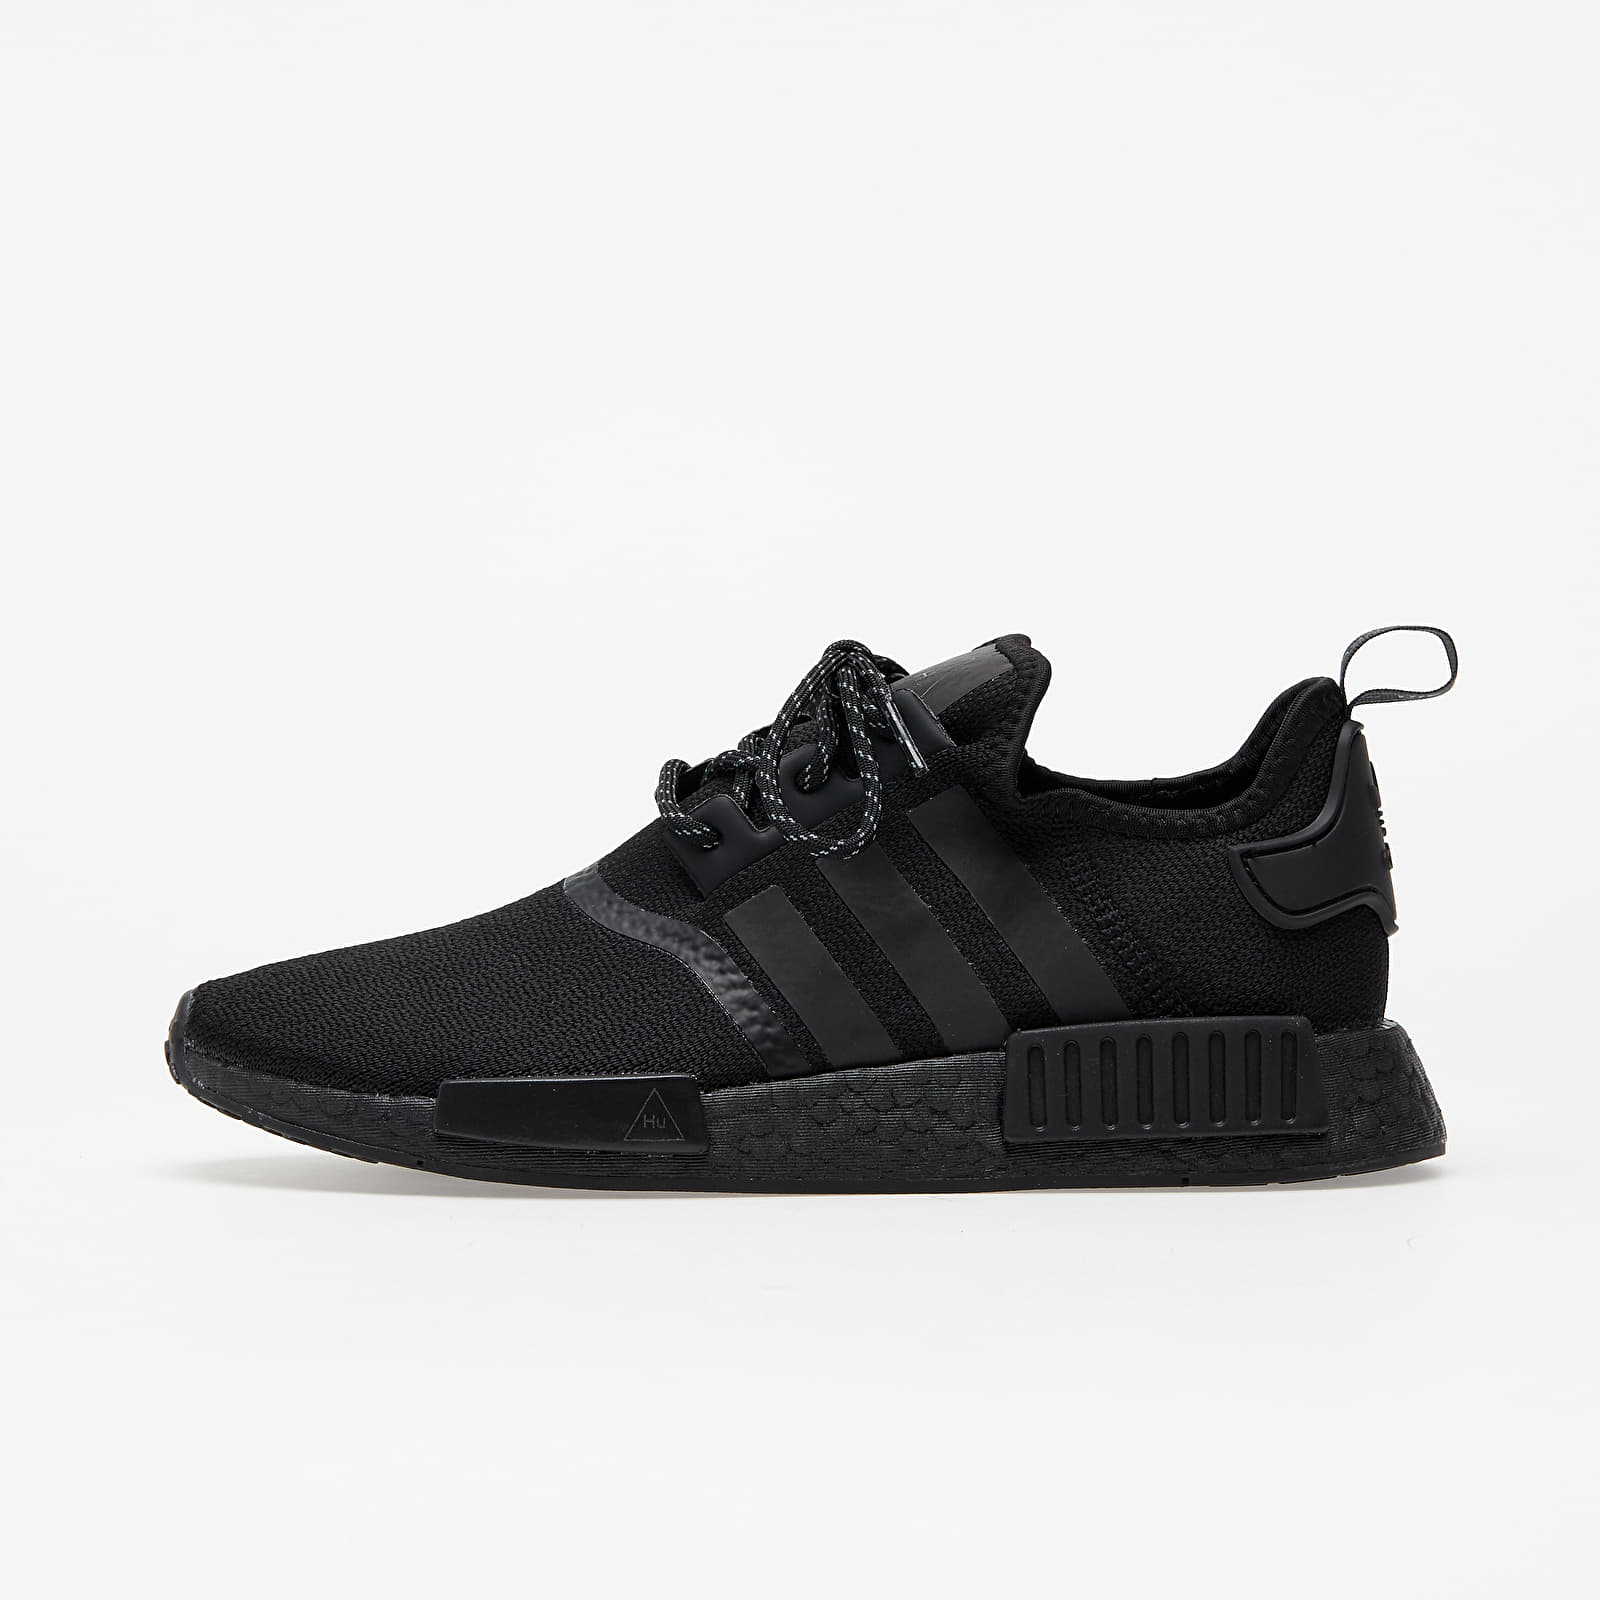 Respectivamente vocal plataforma  Men's shoes adidas x Pharrell Williams NMD_R1 Core Black/ Core Black/ Core  Black | Footshop